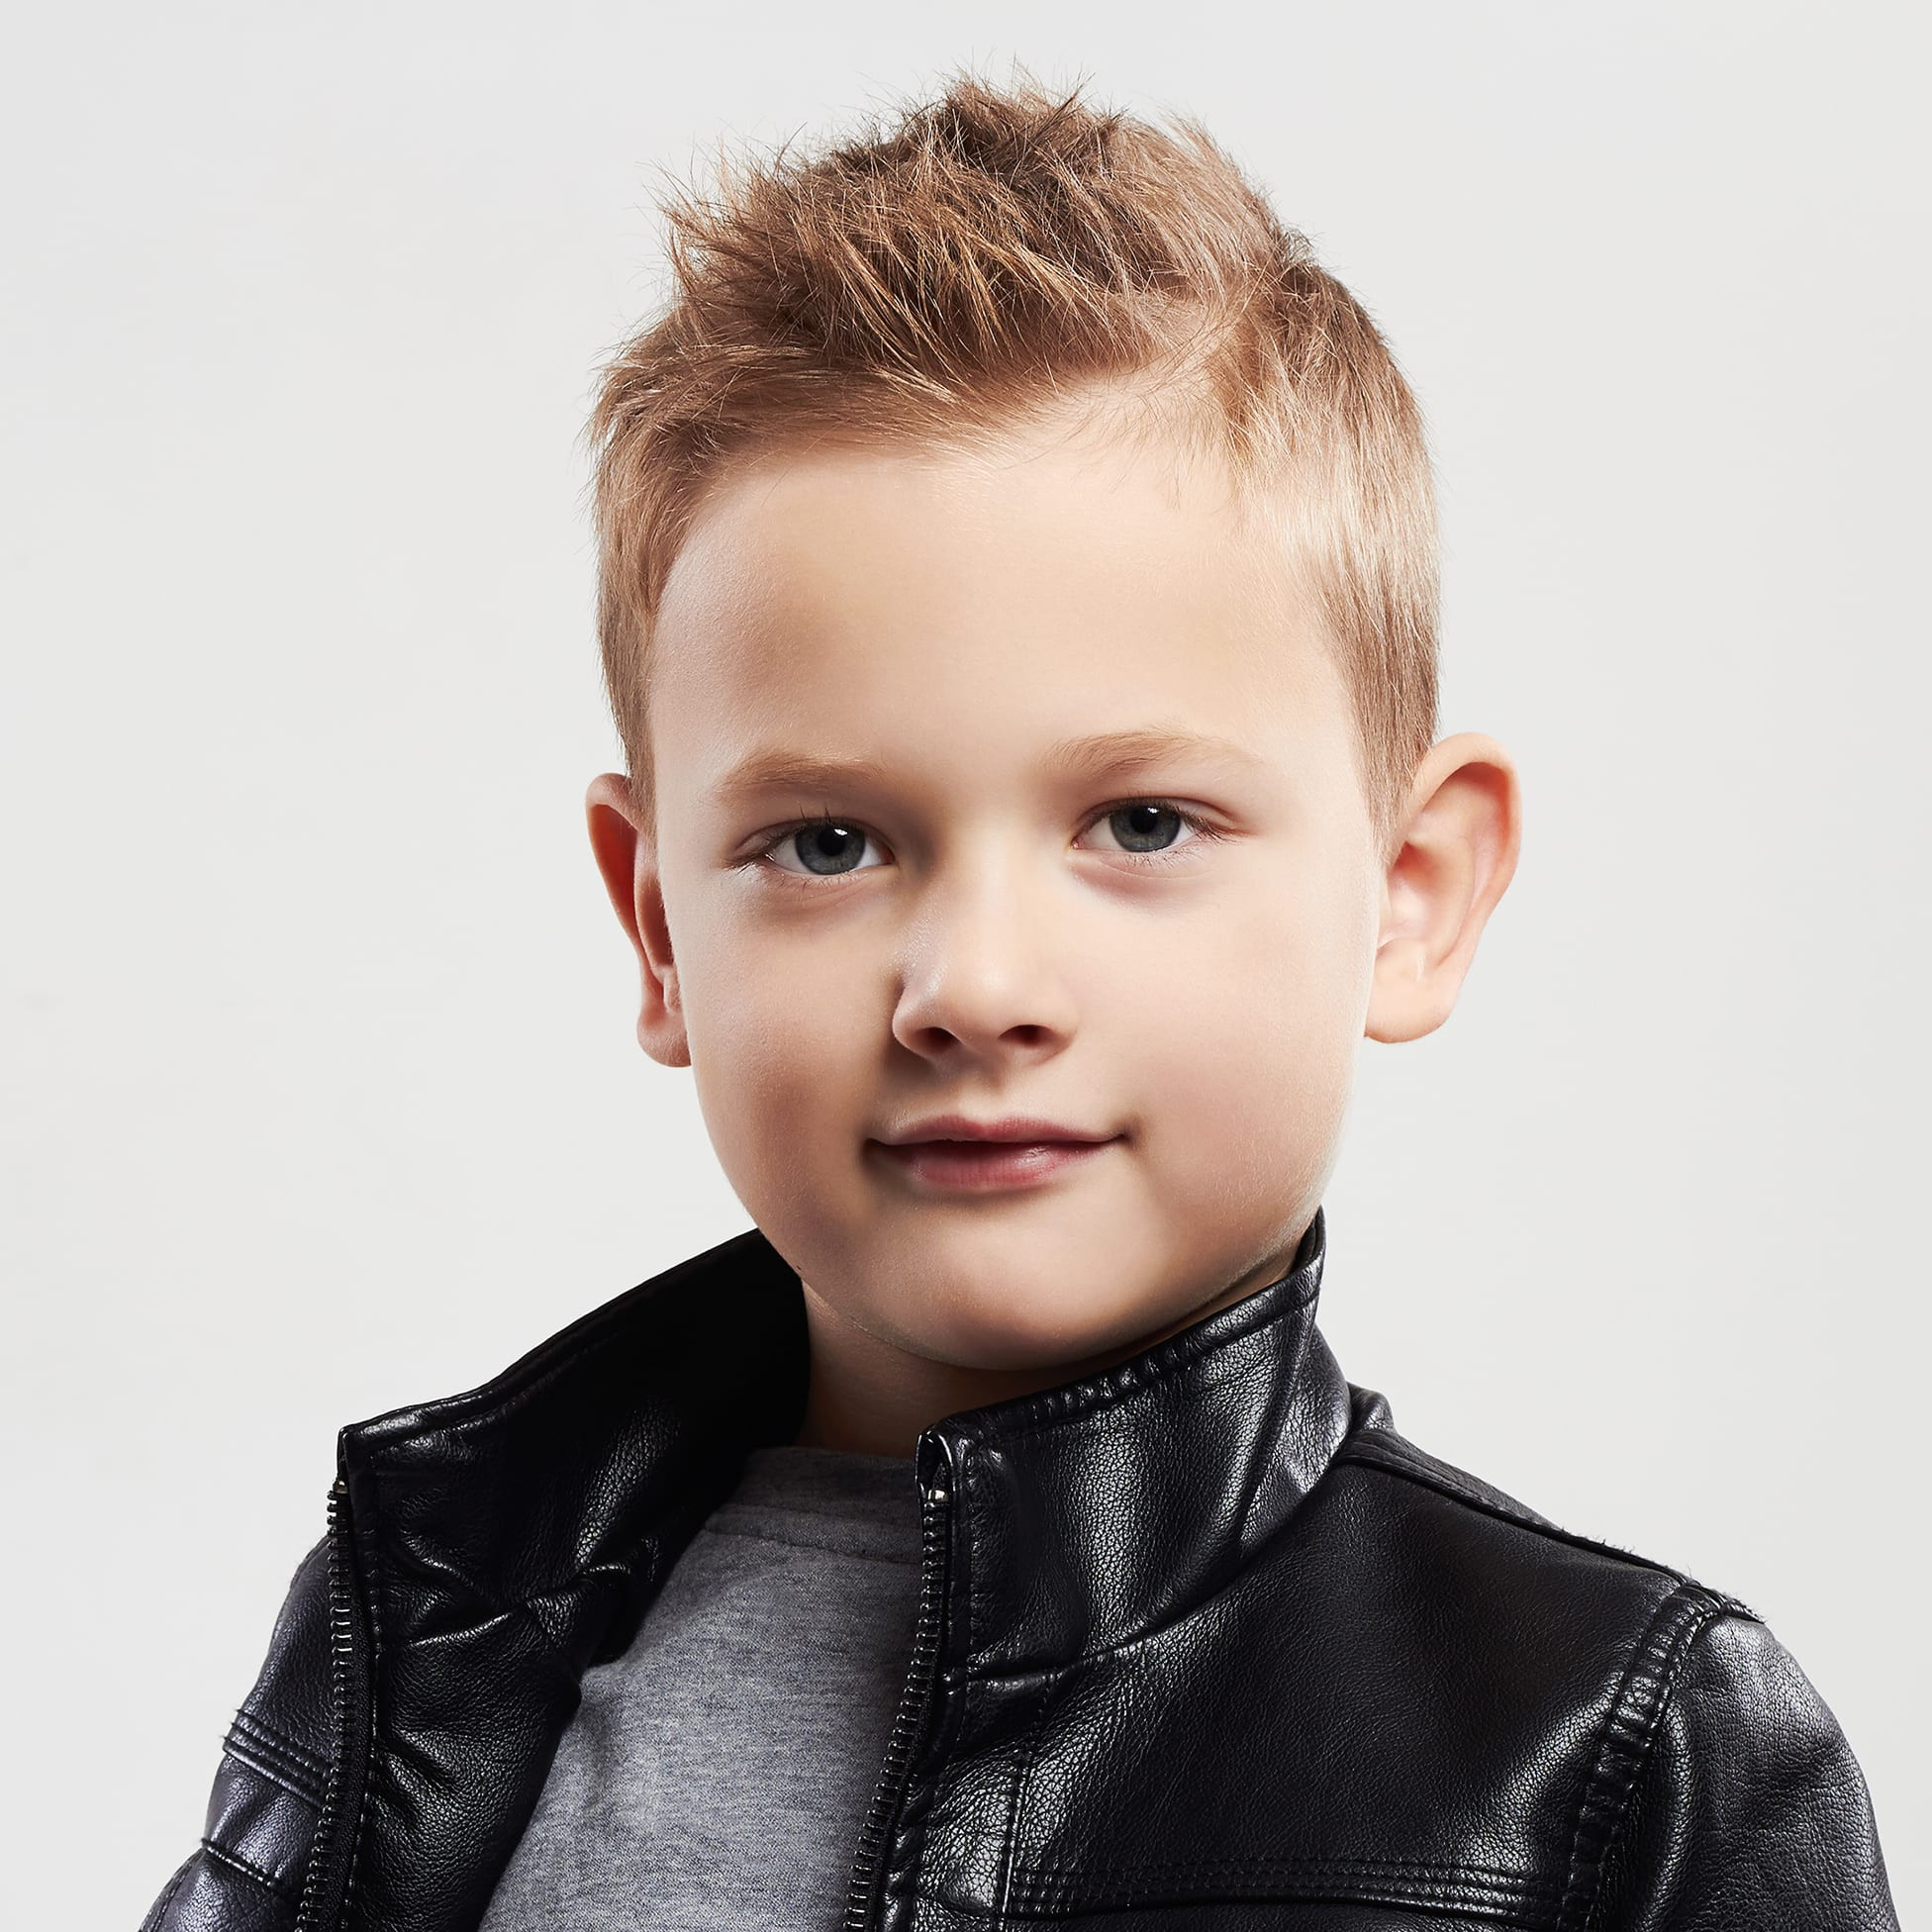 Best ideas about Boys Hairstyle 2019 . Save or Pin 35 Cute Toddler Boy Haircuts Your Kids will Love Now.